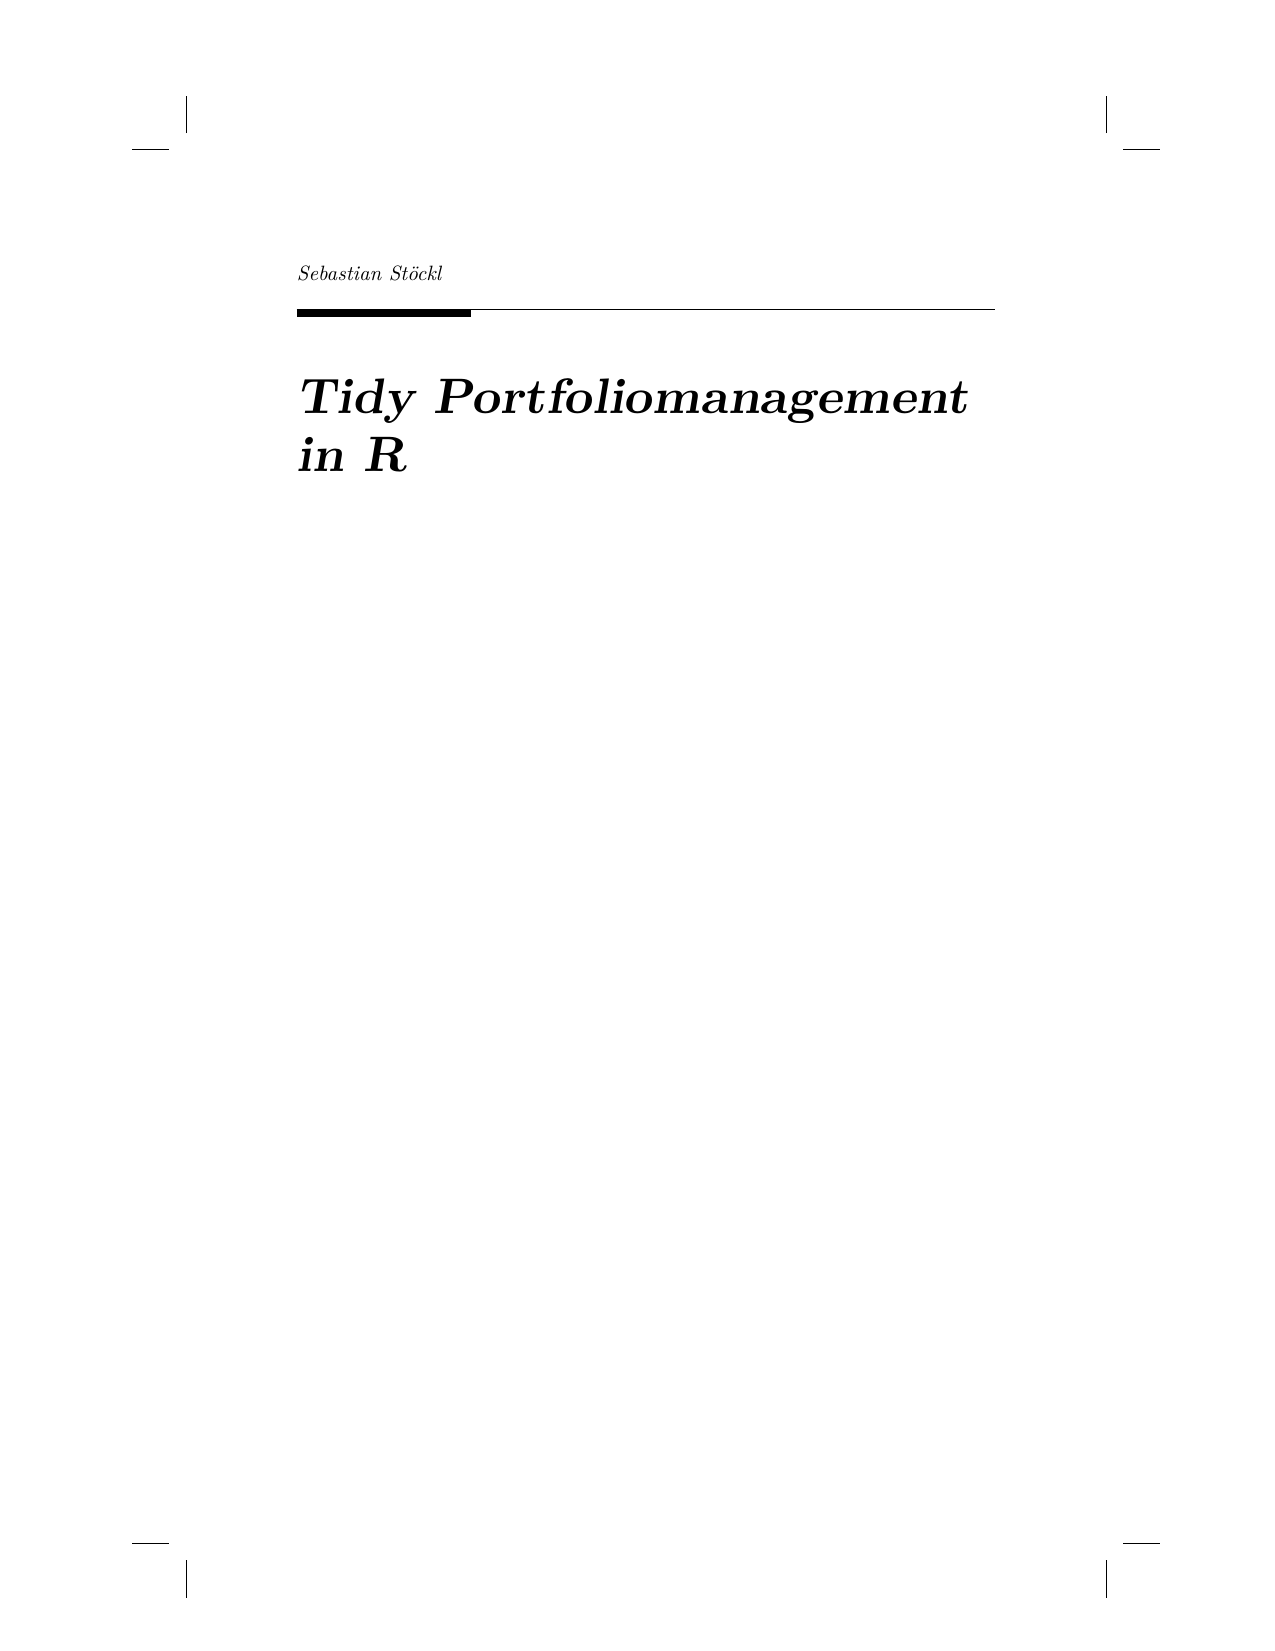 Tidy Portfoliomanagement in R